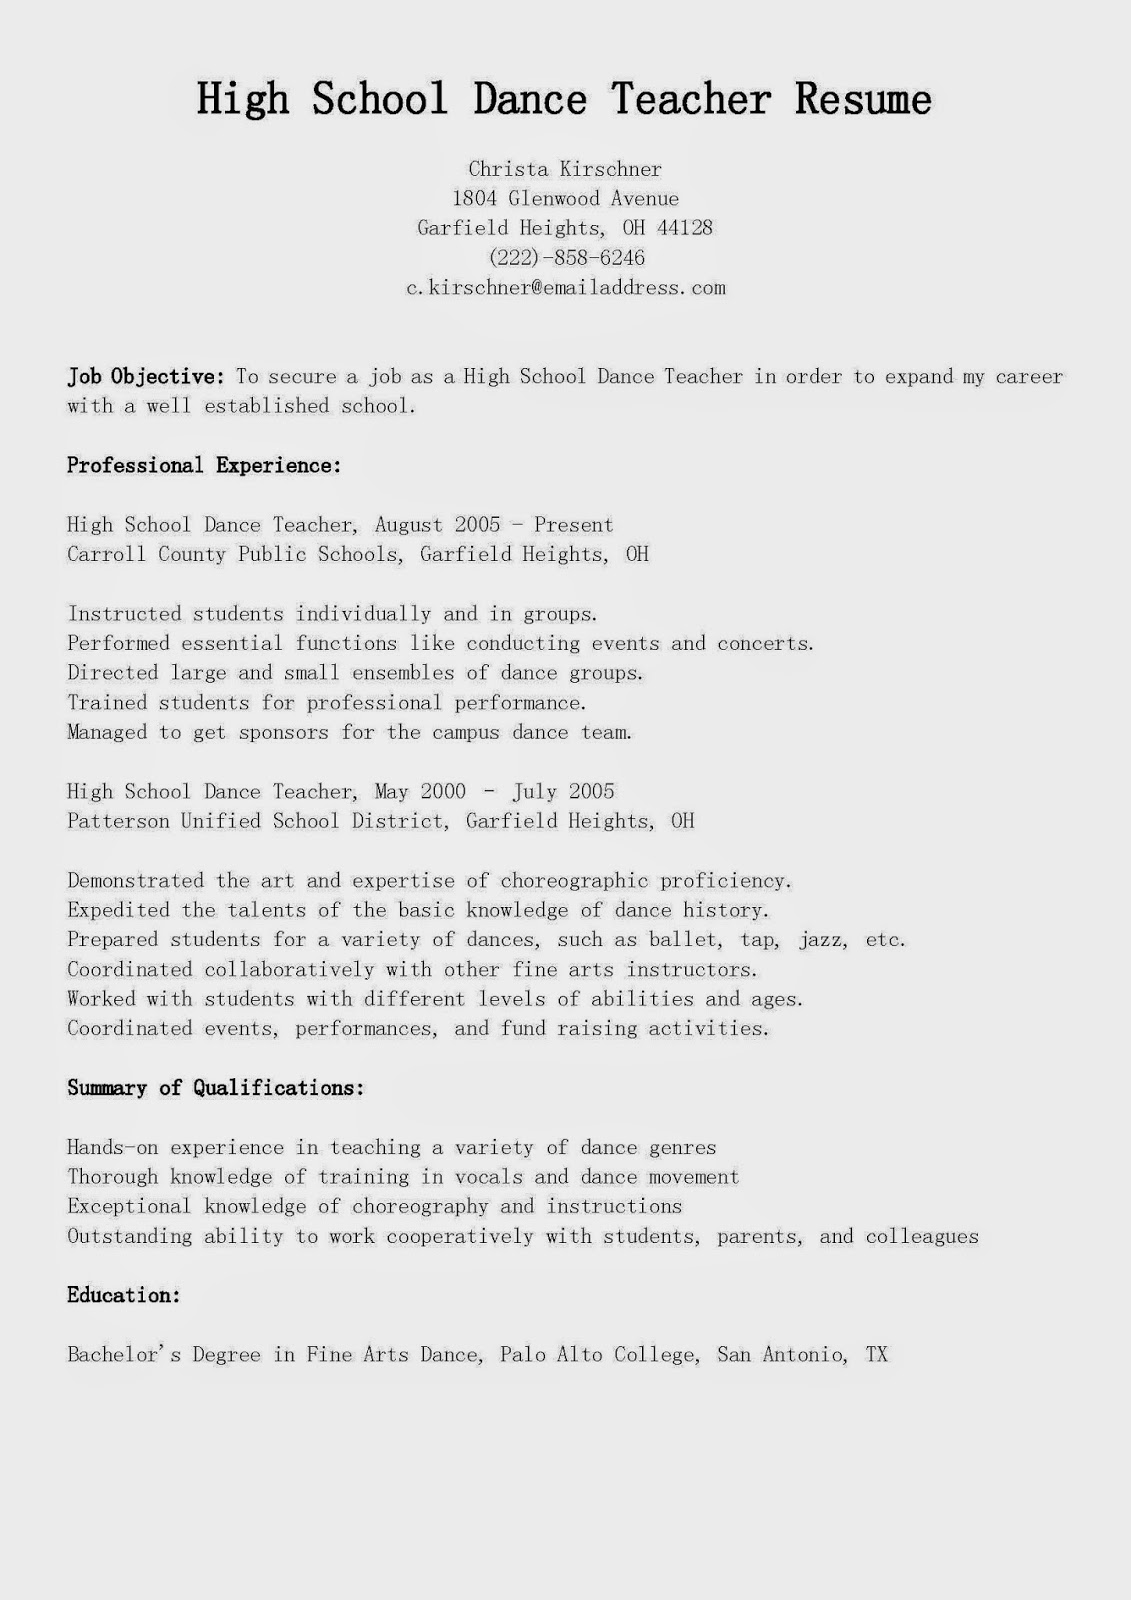 resume samples high school dance teacher resume sample. Black Bedroom Furniture Sets. Home Design Ideas